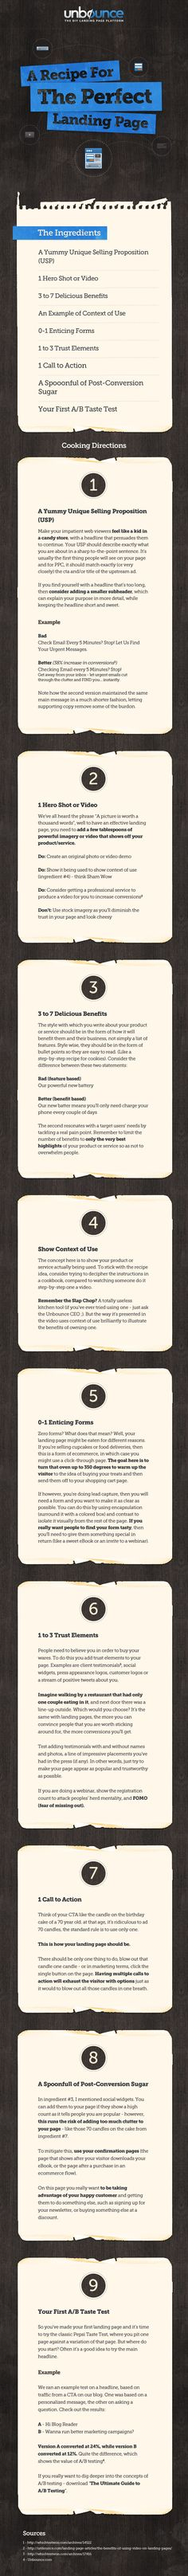 A Recipe for the Perfect Landing Page